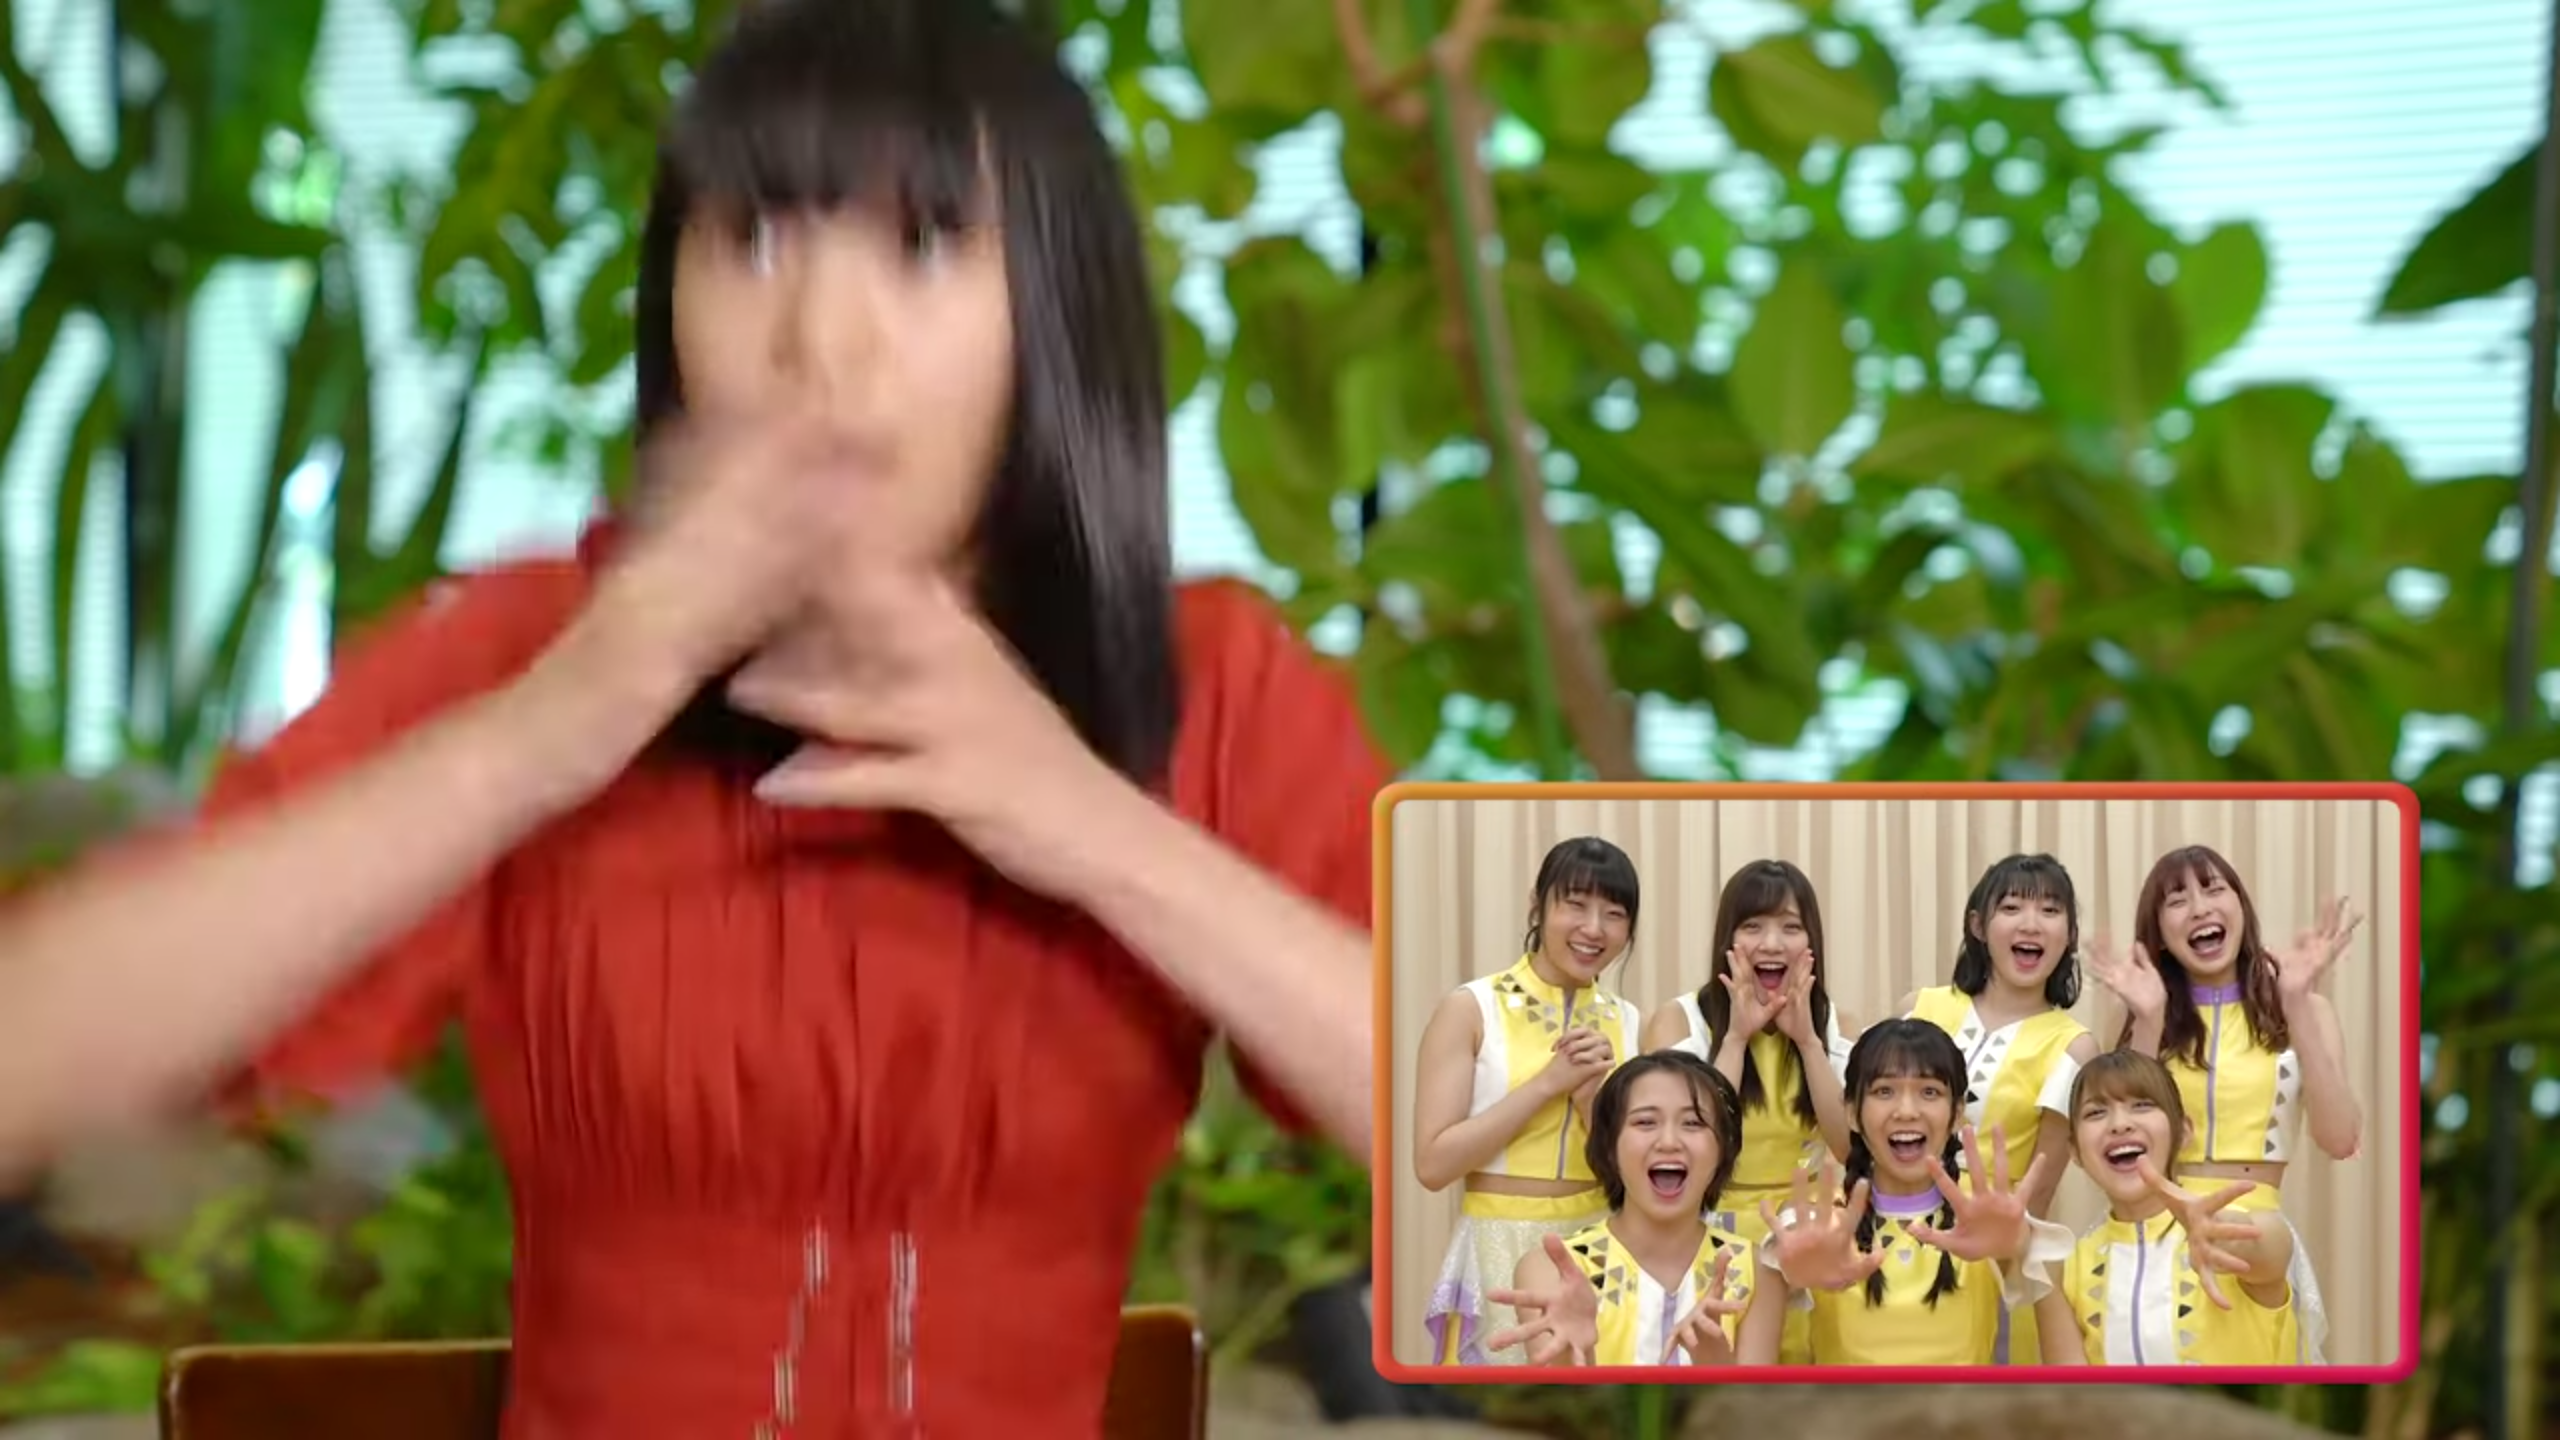 A girl in a red blouse (Riai) jumps up in surprise. The image is caught mid-motion so she is somewhat blurred. In the left corner is a shot of Juice=Juice in a variety of expressions as they welcome her to their band. Plants and blinds can be seen in the background.